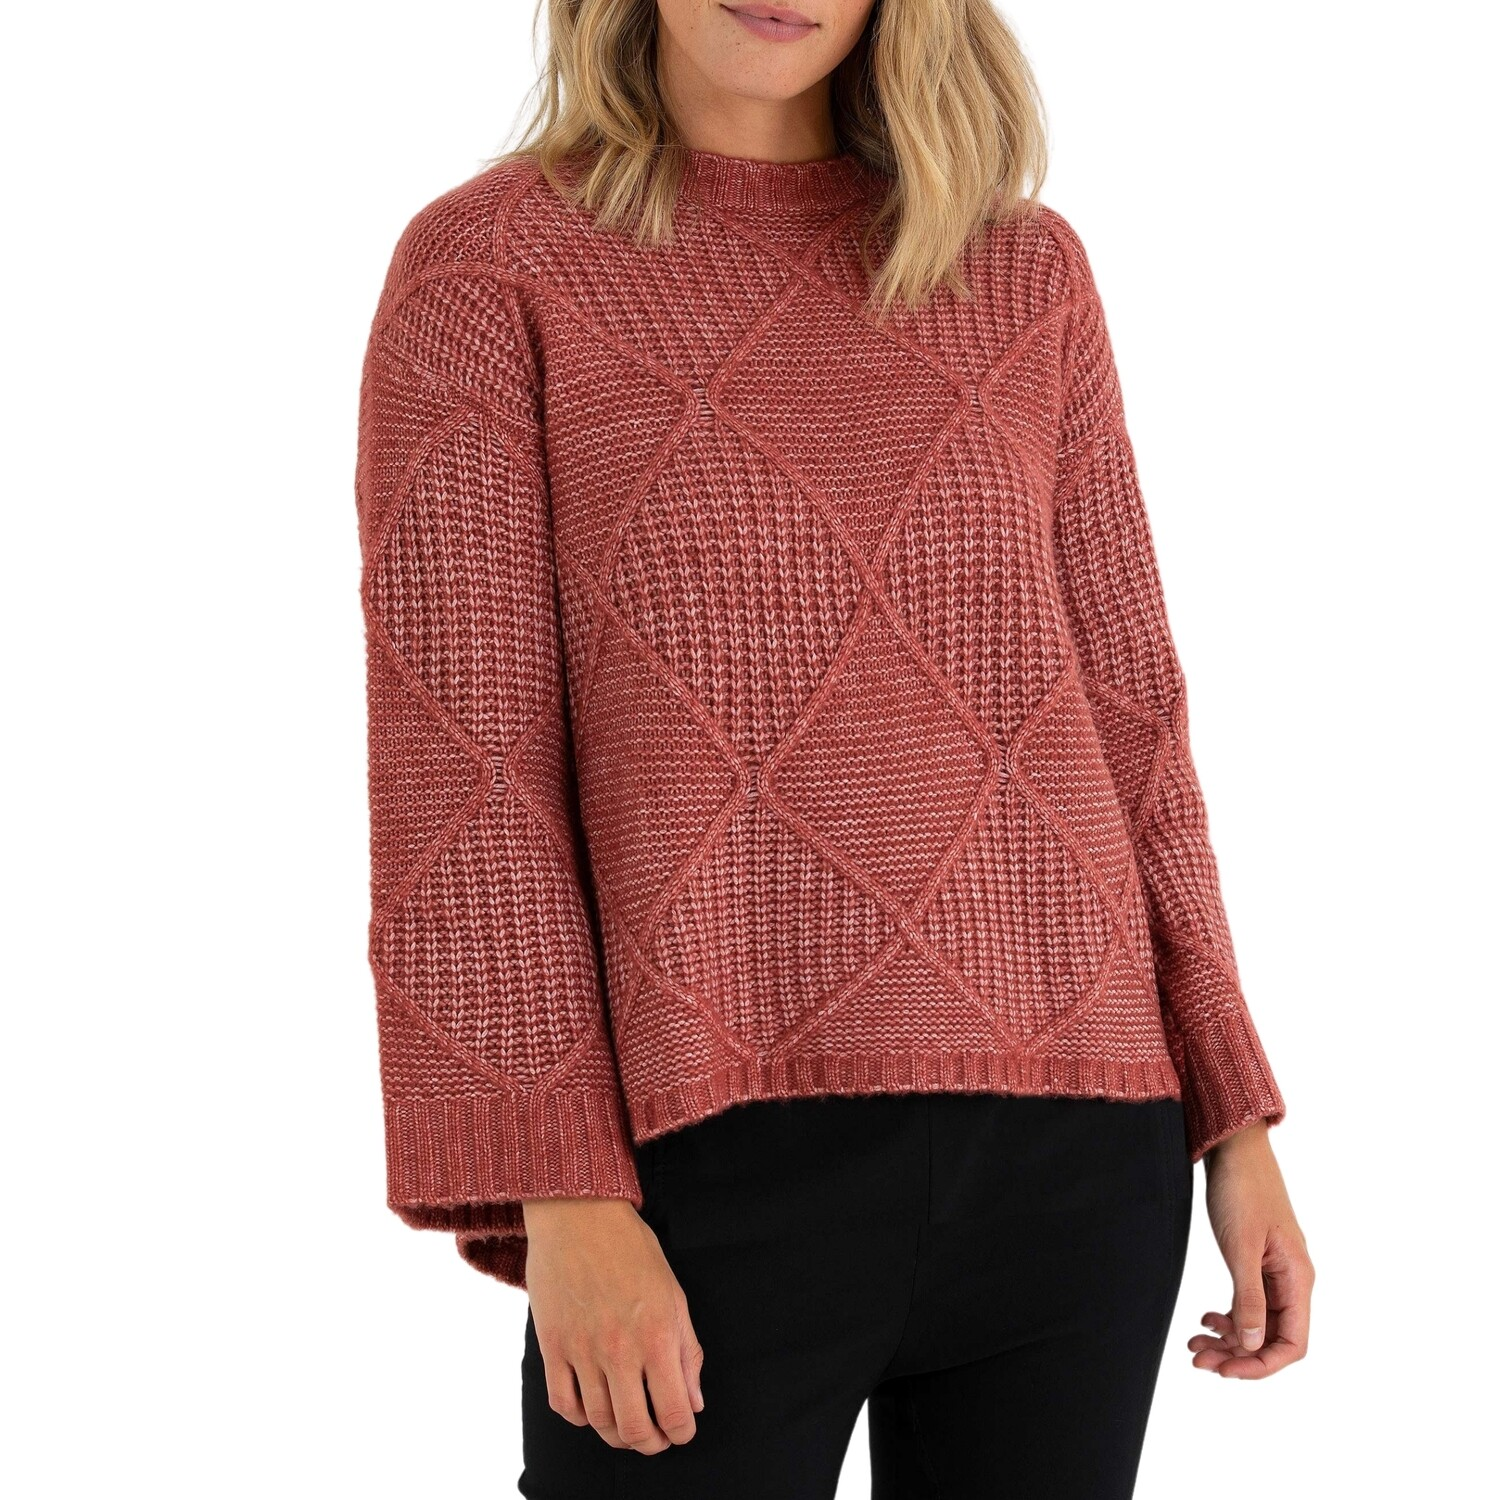 Cable Knit Jumper by Marco Polo